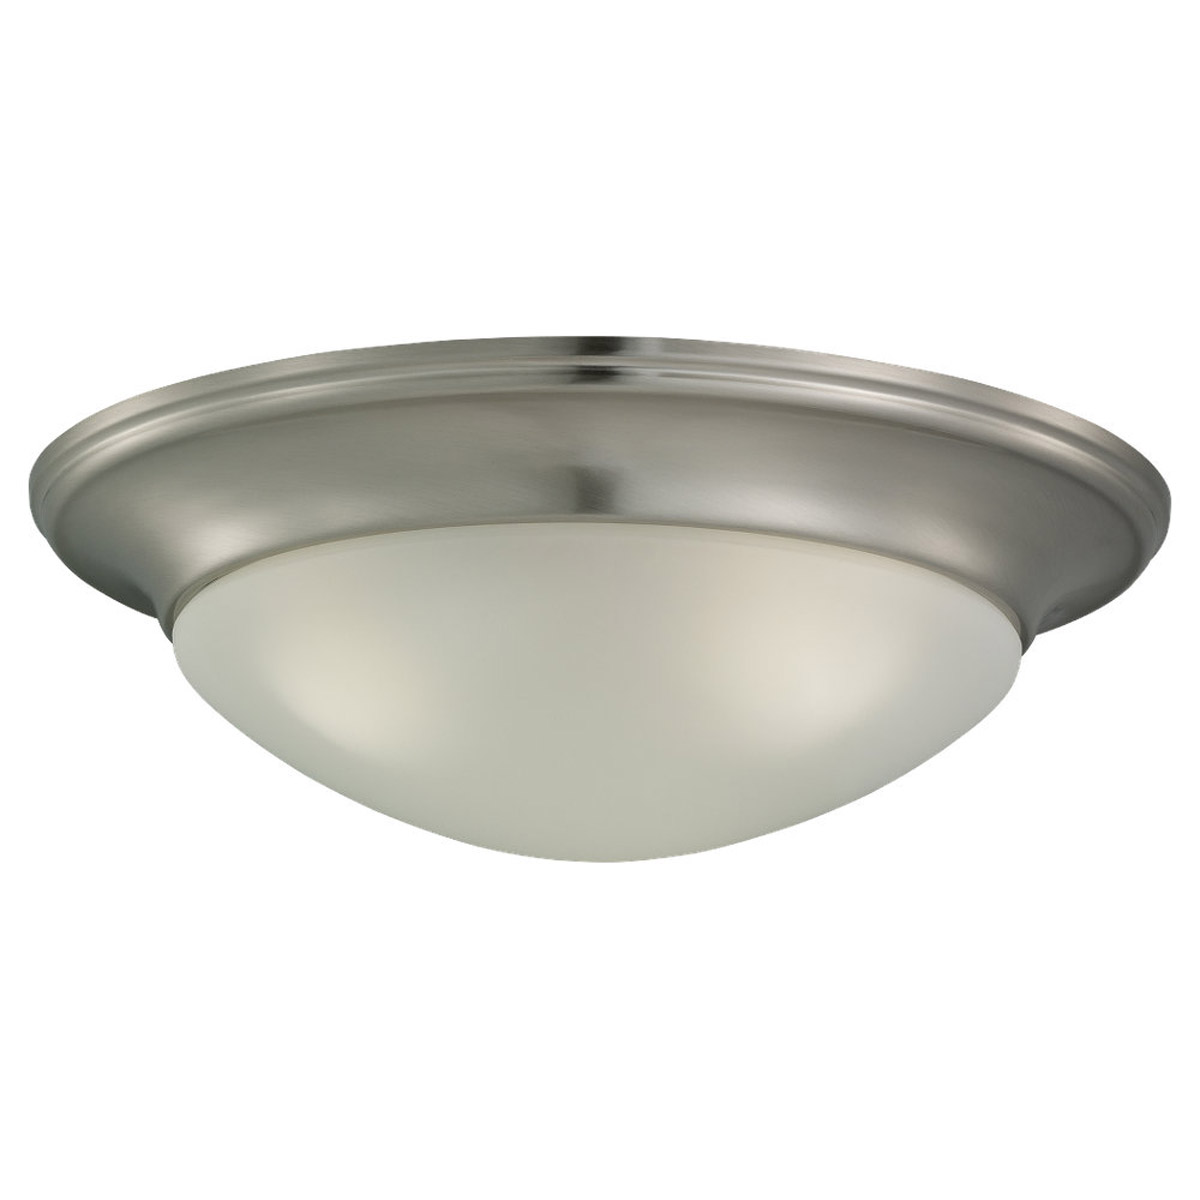 Sea Gull Lighting Nash 3 Light Flush Mount in Brushed Nickel 79436BLE-962 photo